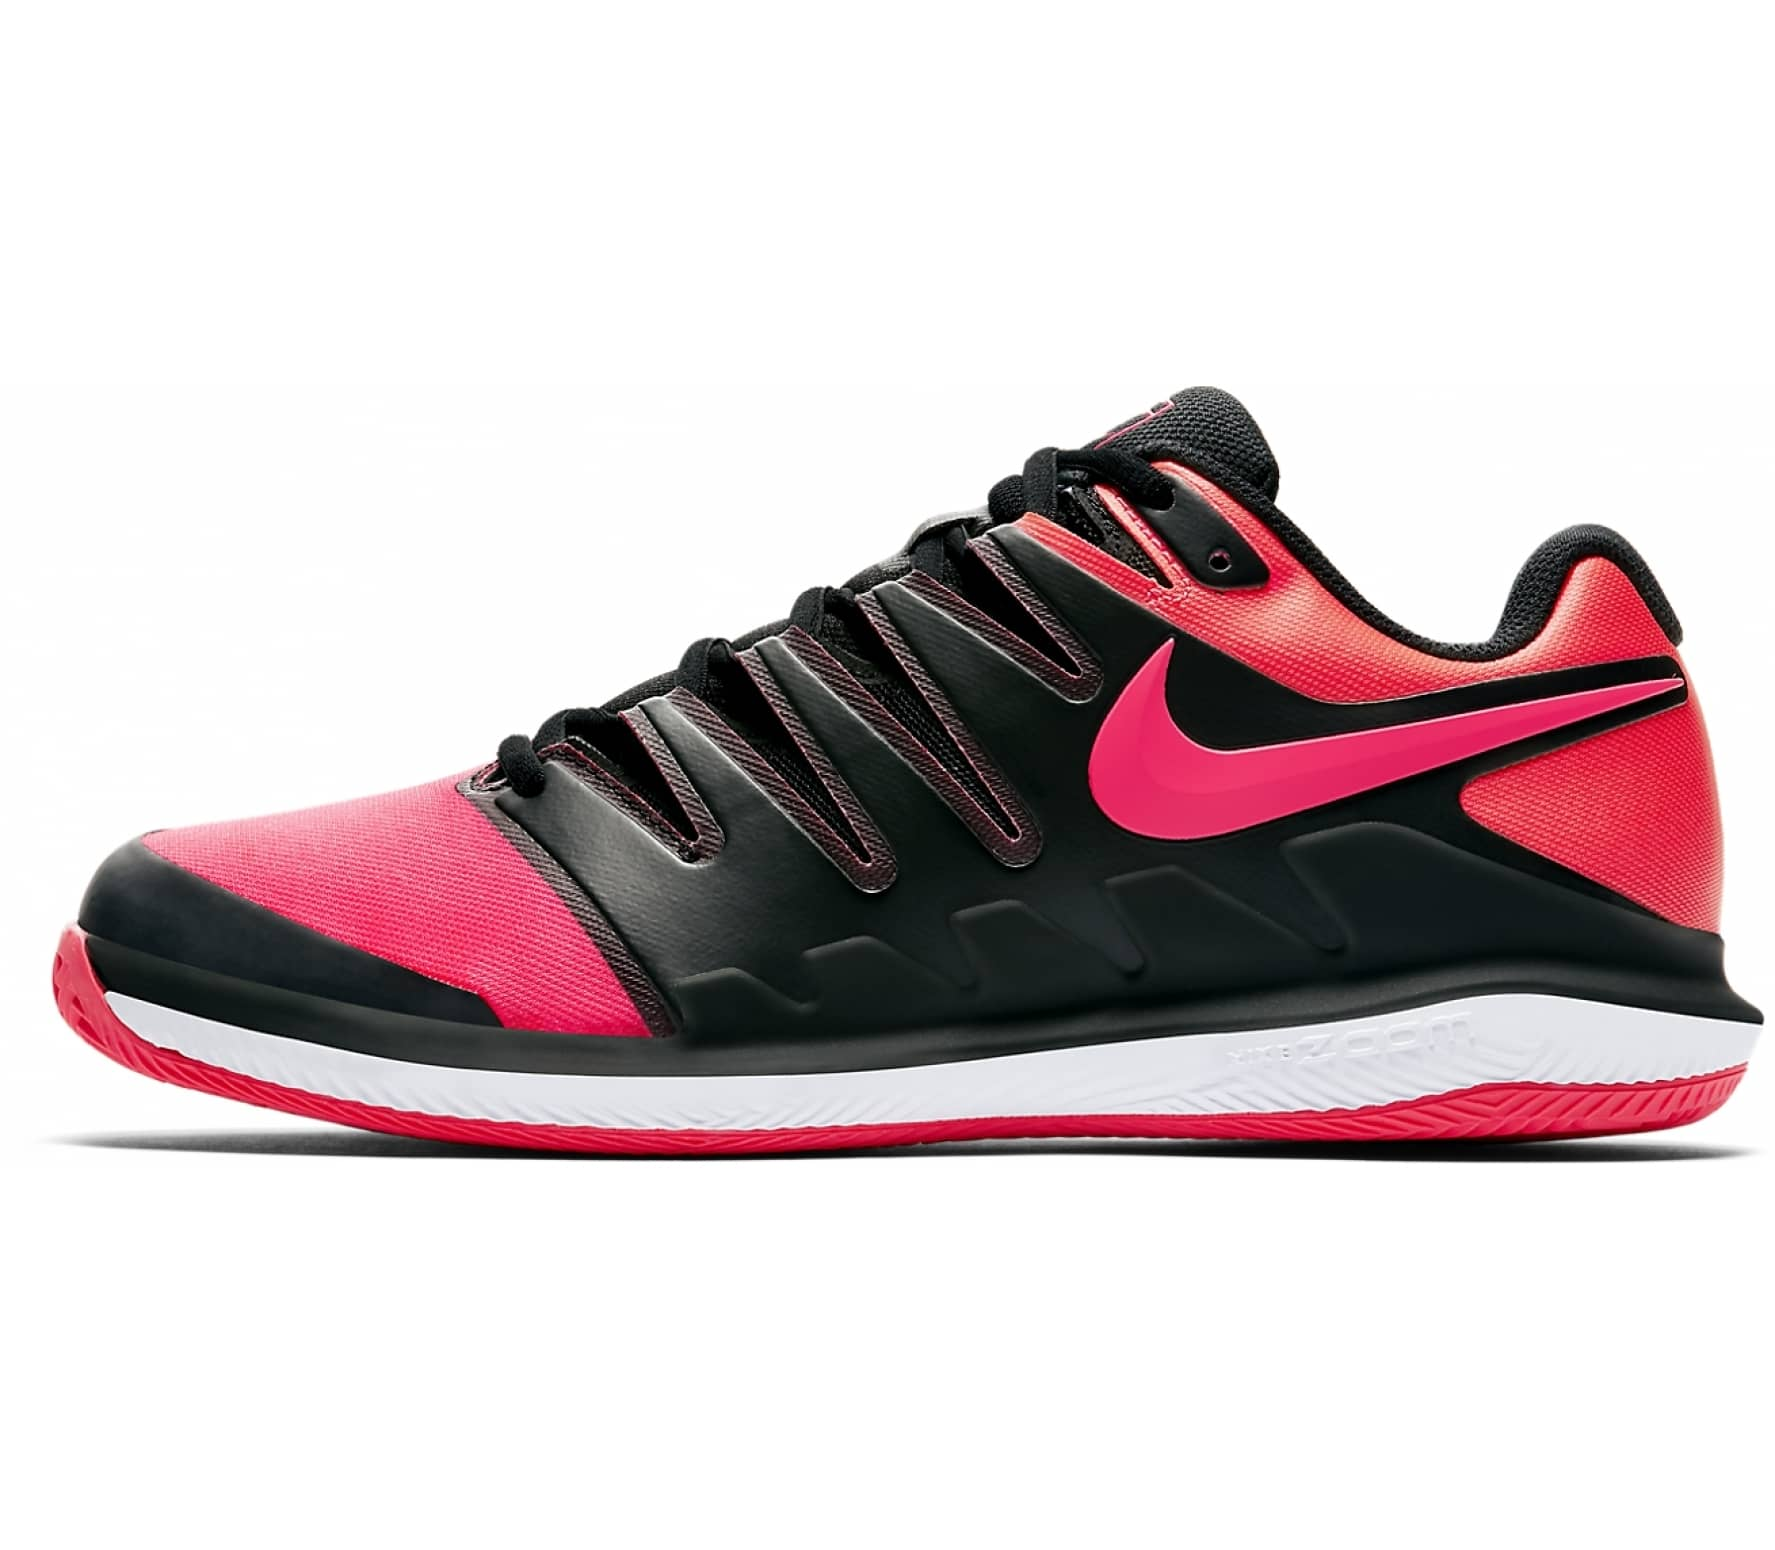 Nike - Air Zoom Vapor X Clay men's tennis shoes (black ...